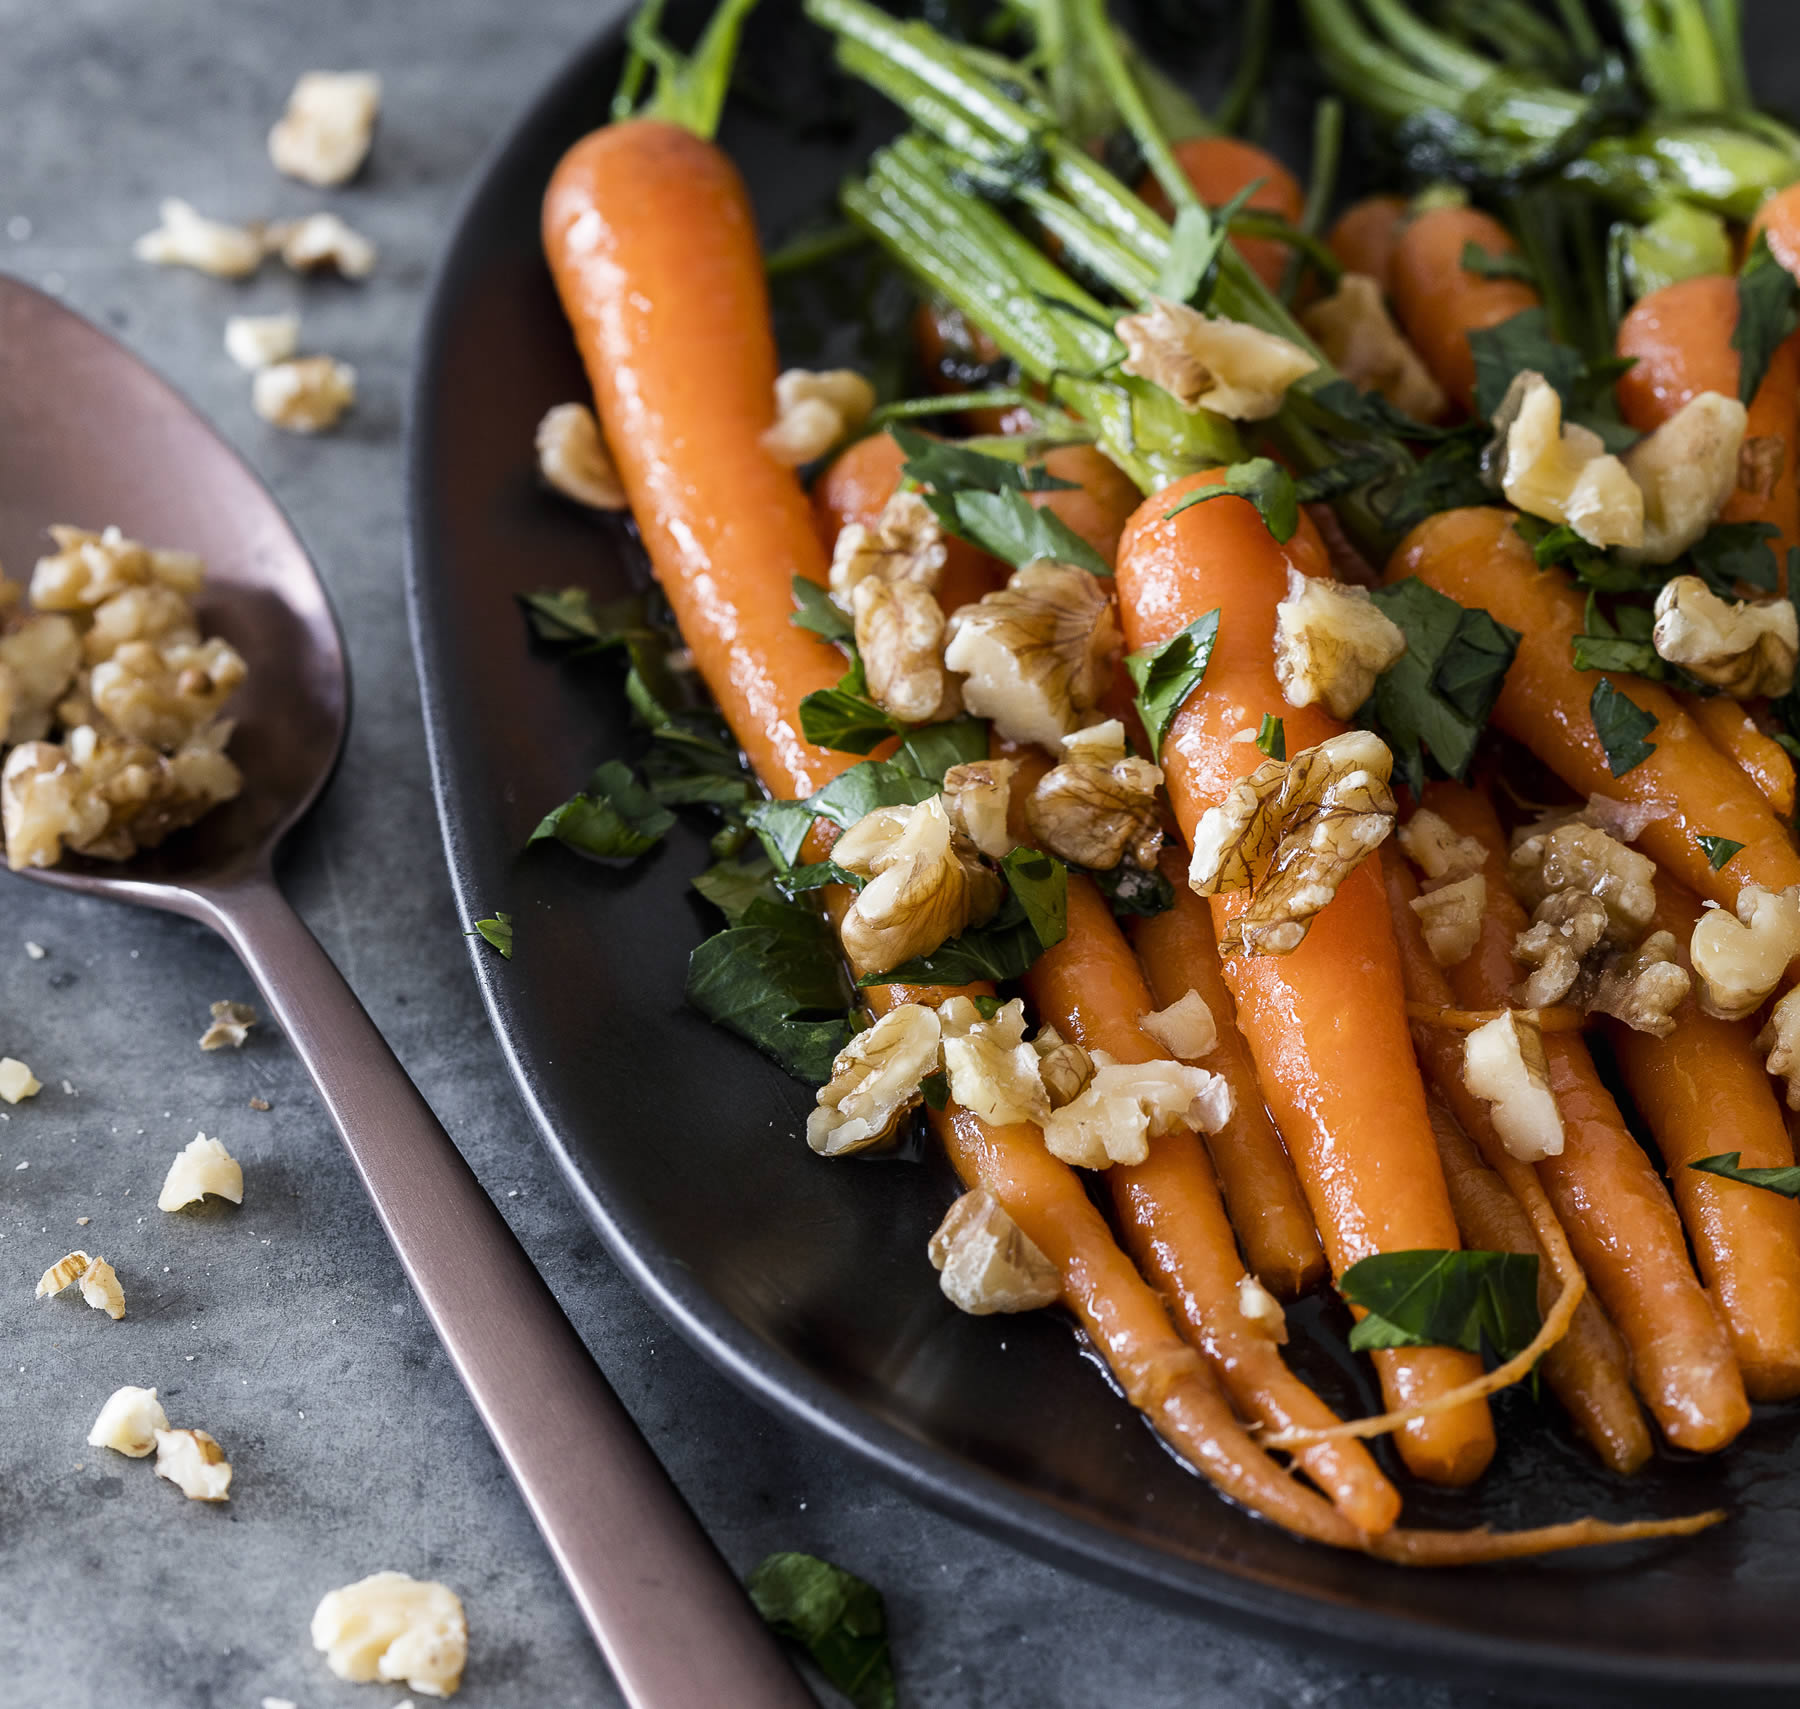 Maple glazed walnuts & carrots